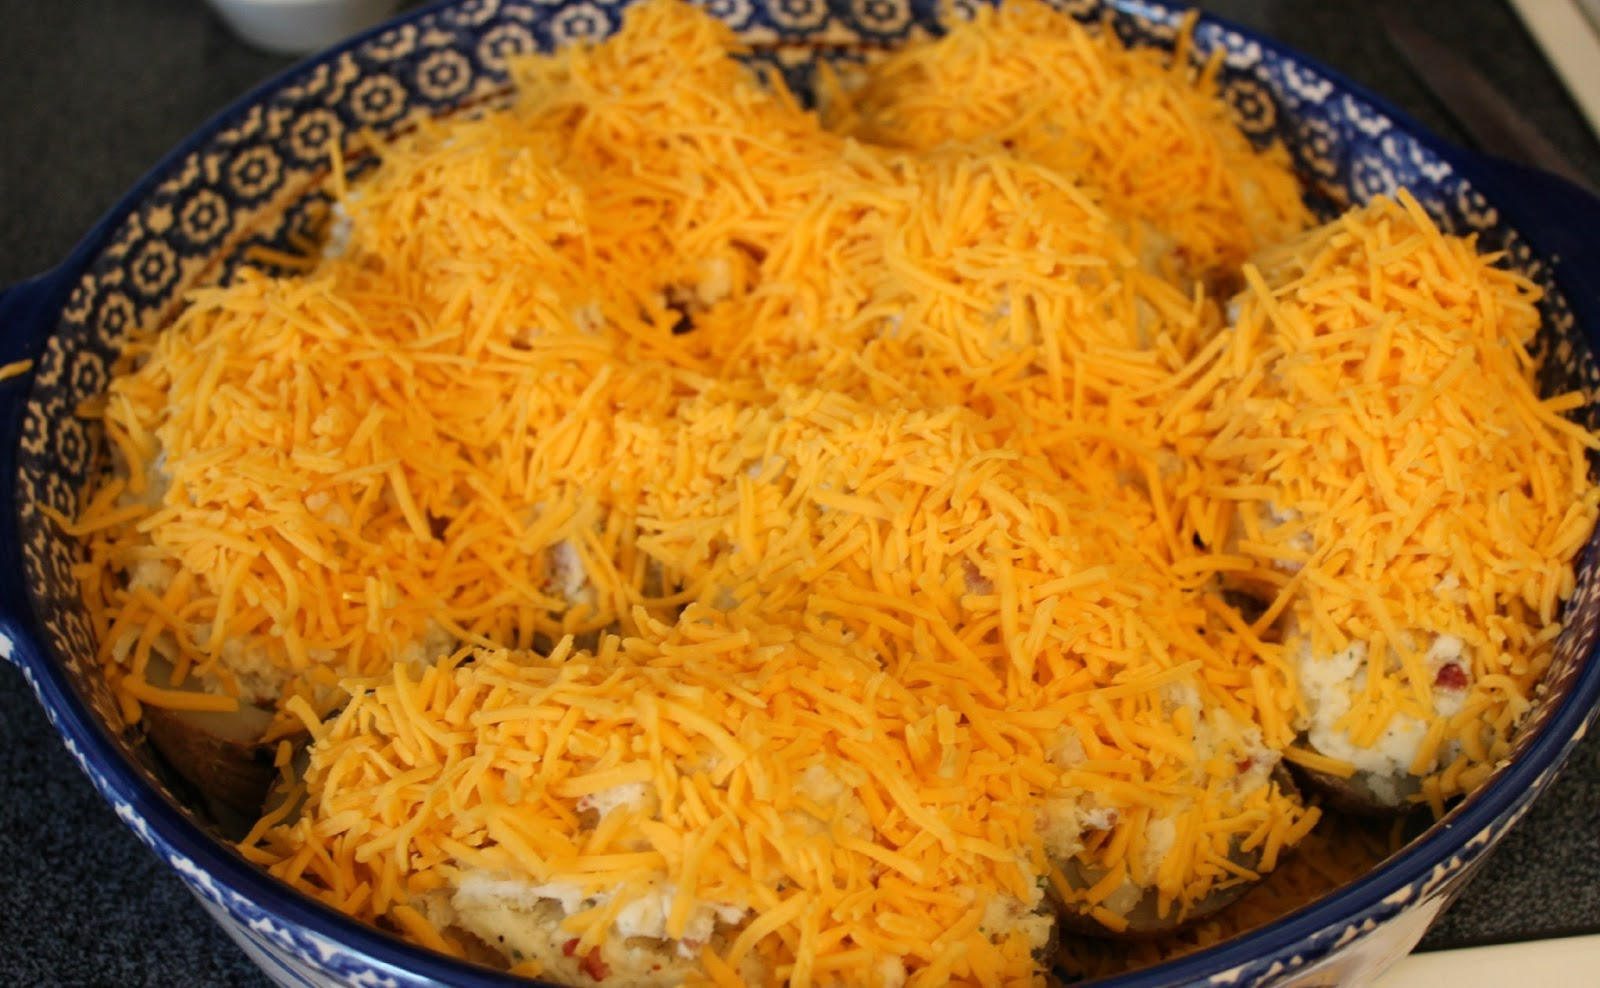 Sprinkle each one generously with shredded cheese and place in a 375 ...